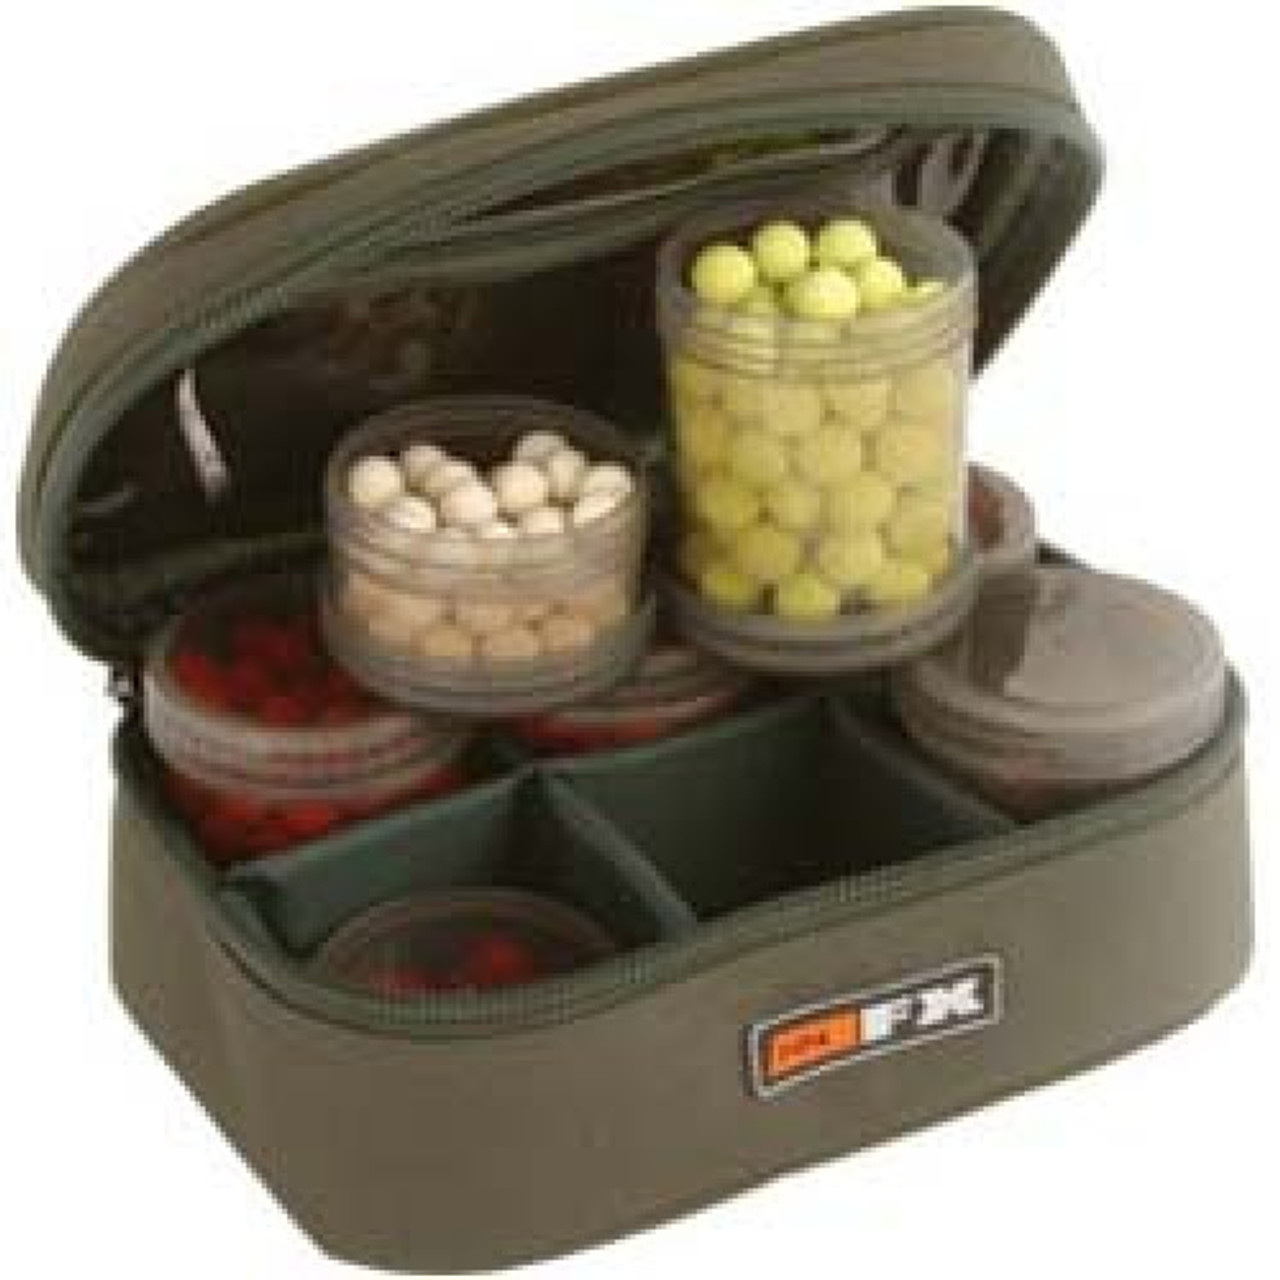 FOX FX Glug Pot Case & Pots